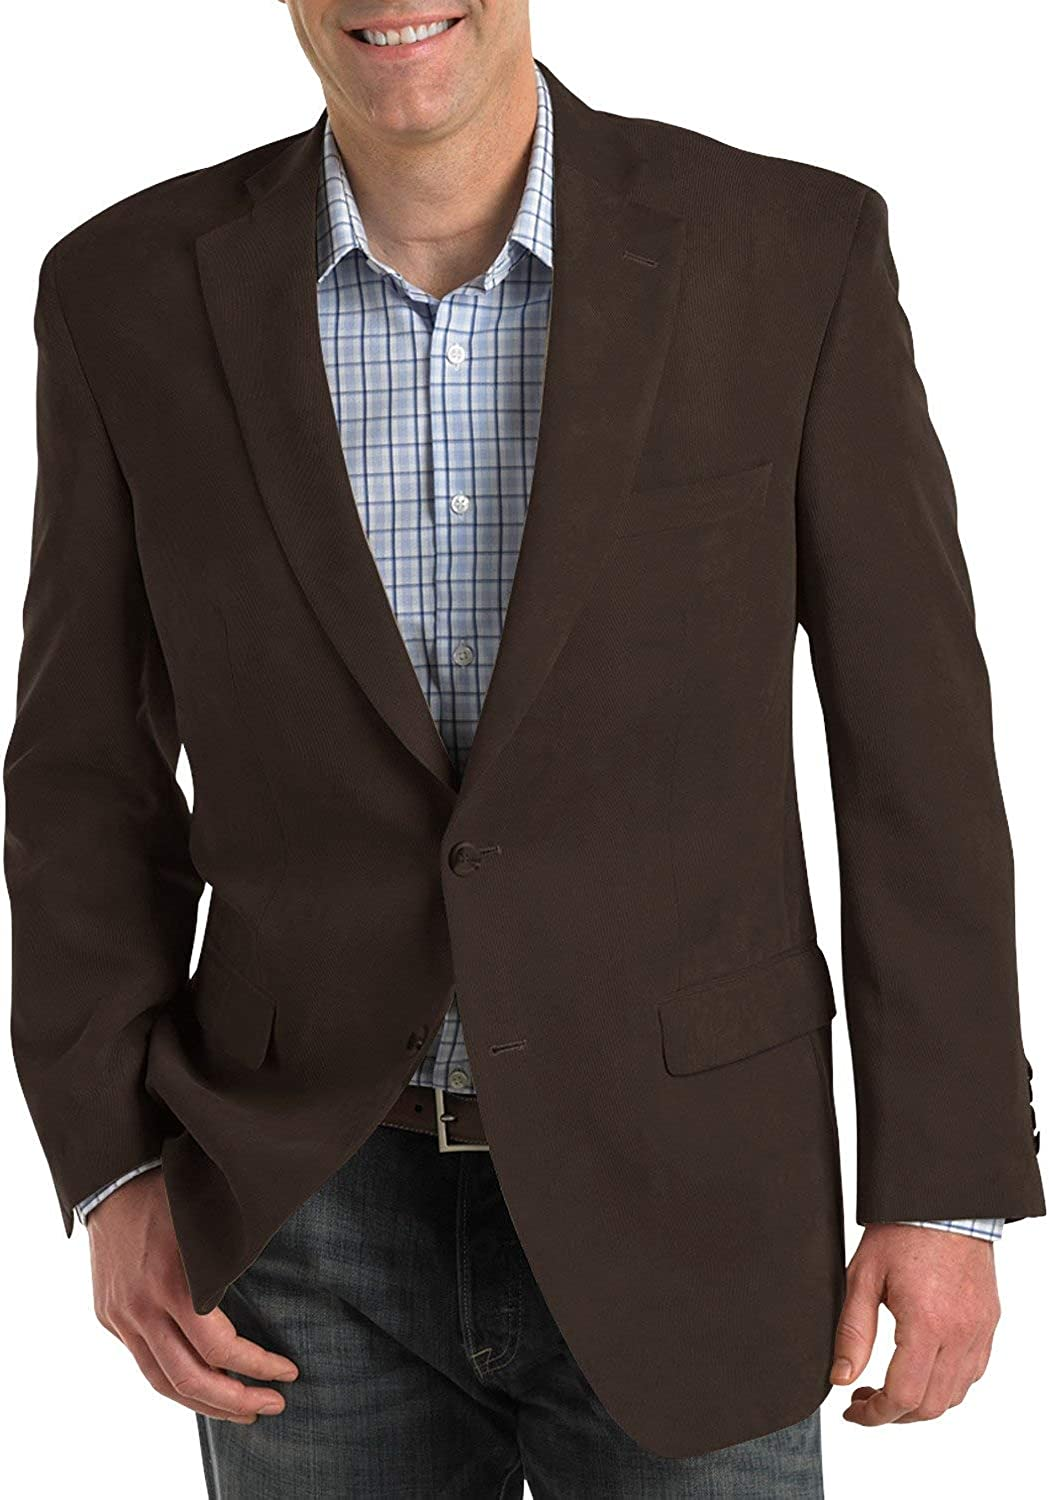 Free shipping anywhere in the nation Jean-Paul Germain Microfiber Suede-Touch Super sale period limited Blazer